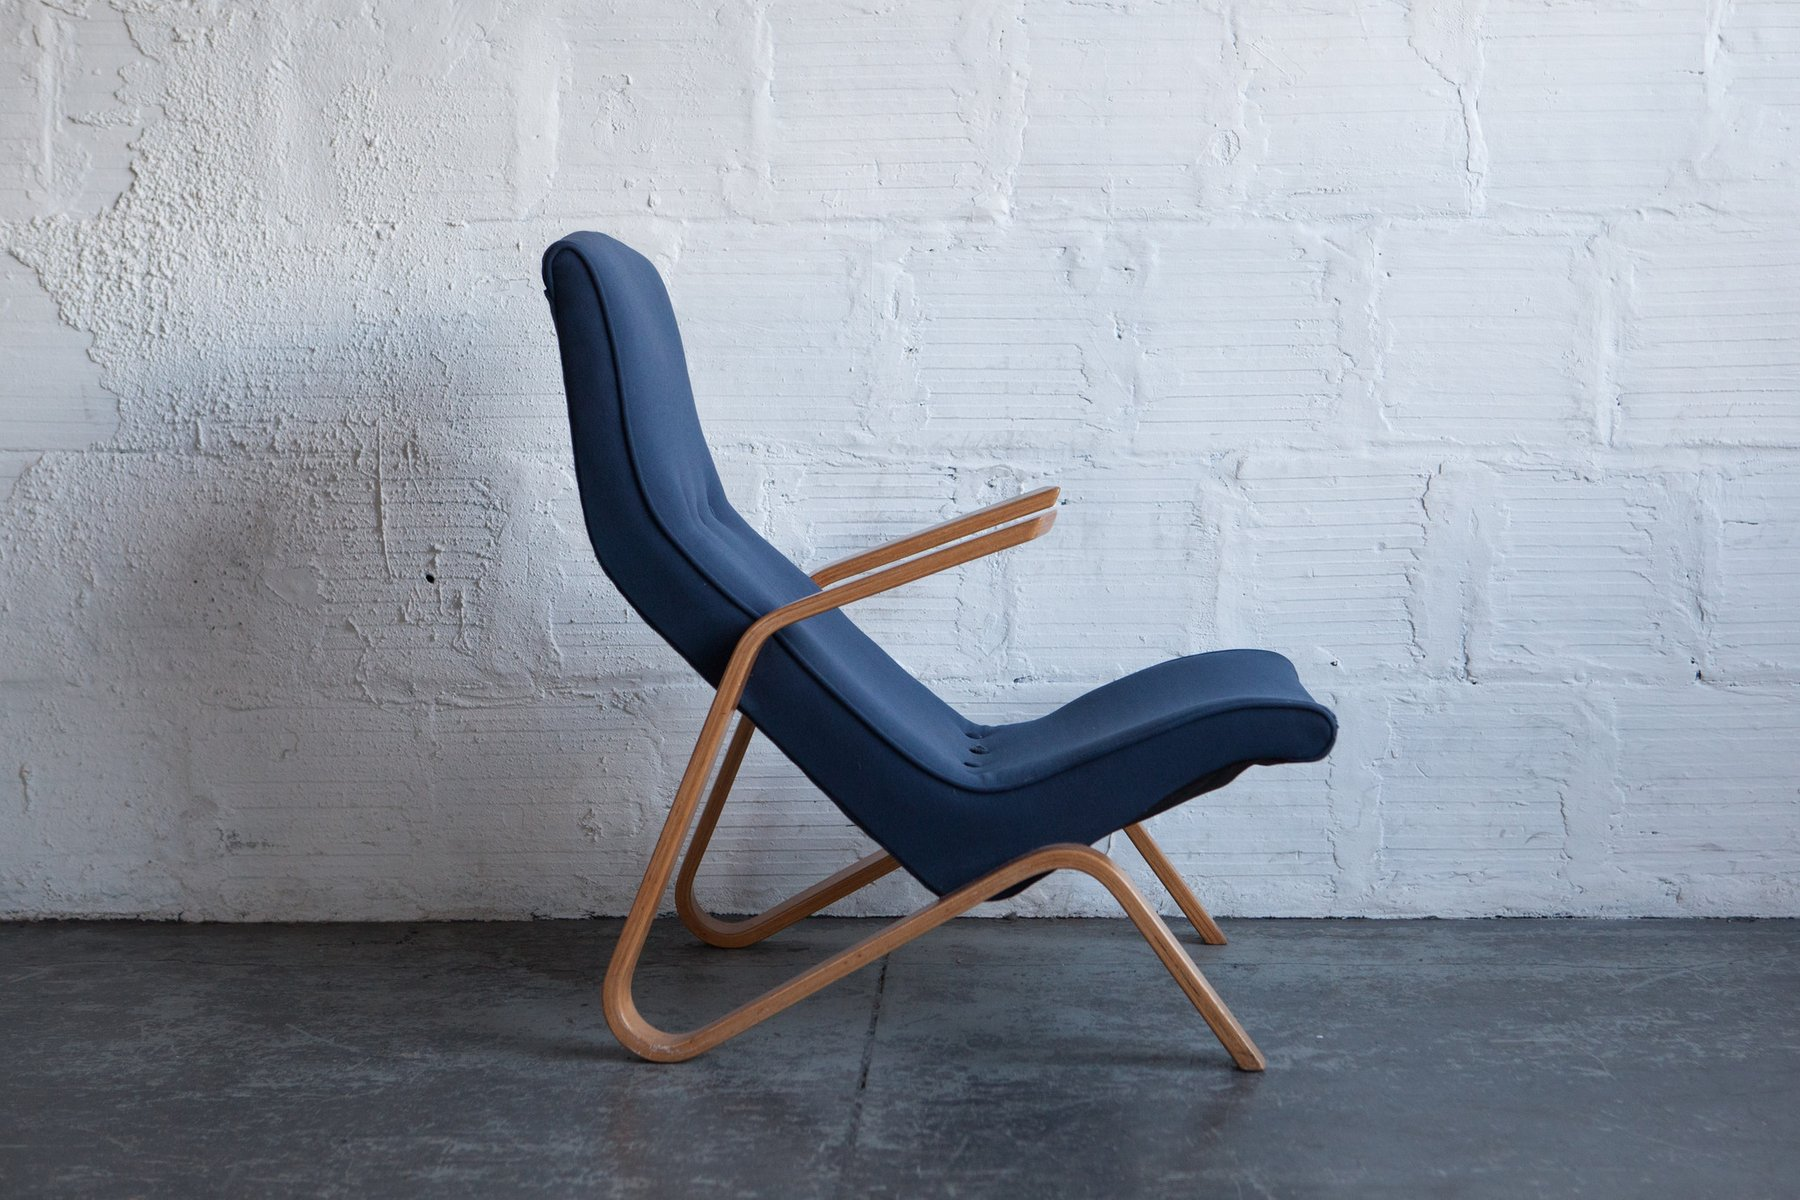 Vintage Grasshopper Chair by Eero Saarinen for Knoll for sale at